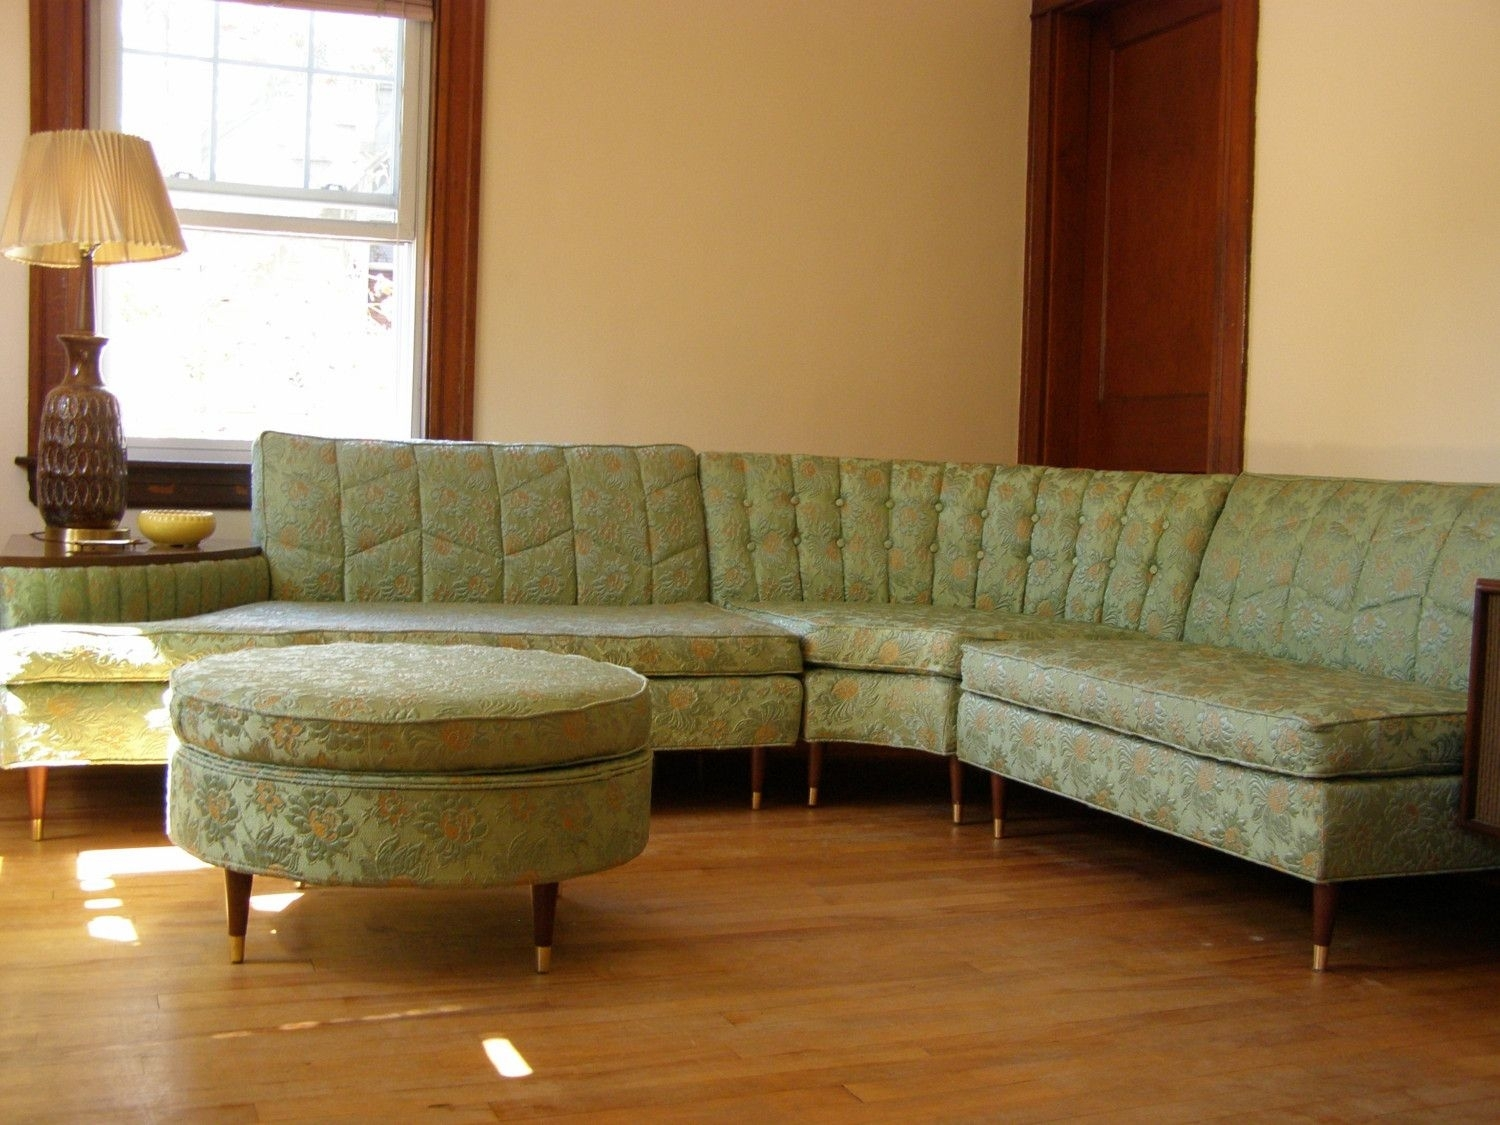 Retro Couches | New Years Sale Vintage Sectional Sofa With Built Throughout Vintage Sectional Sofas (View 2 of 10)